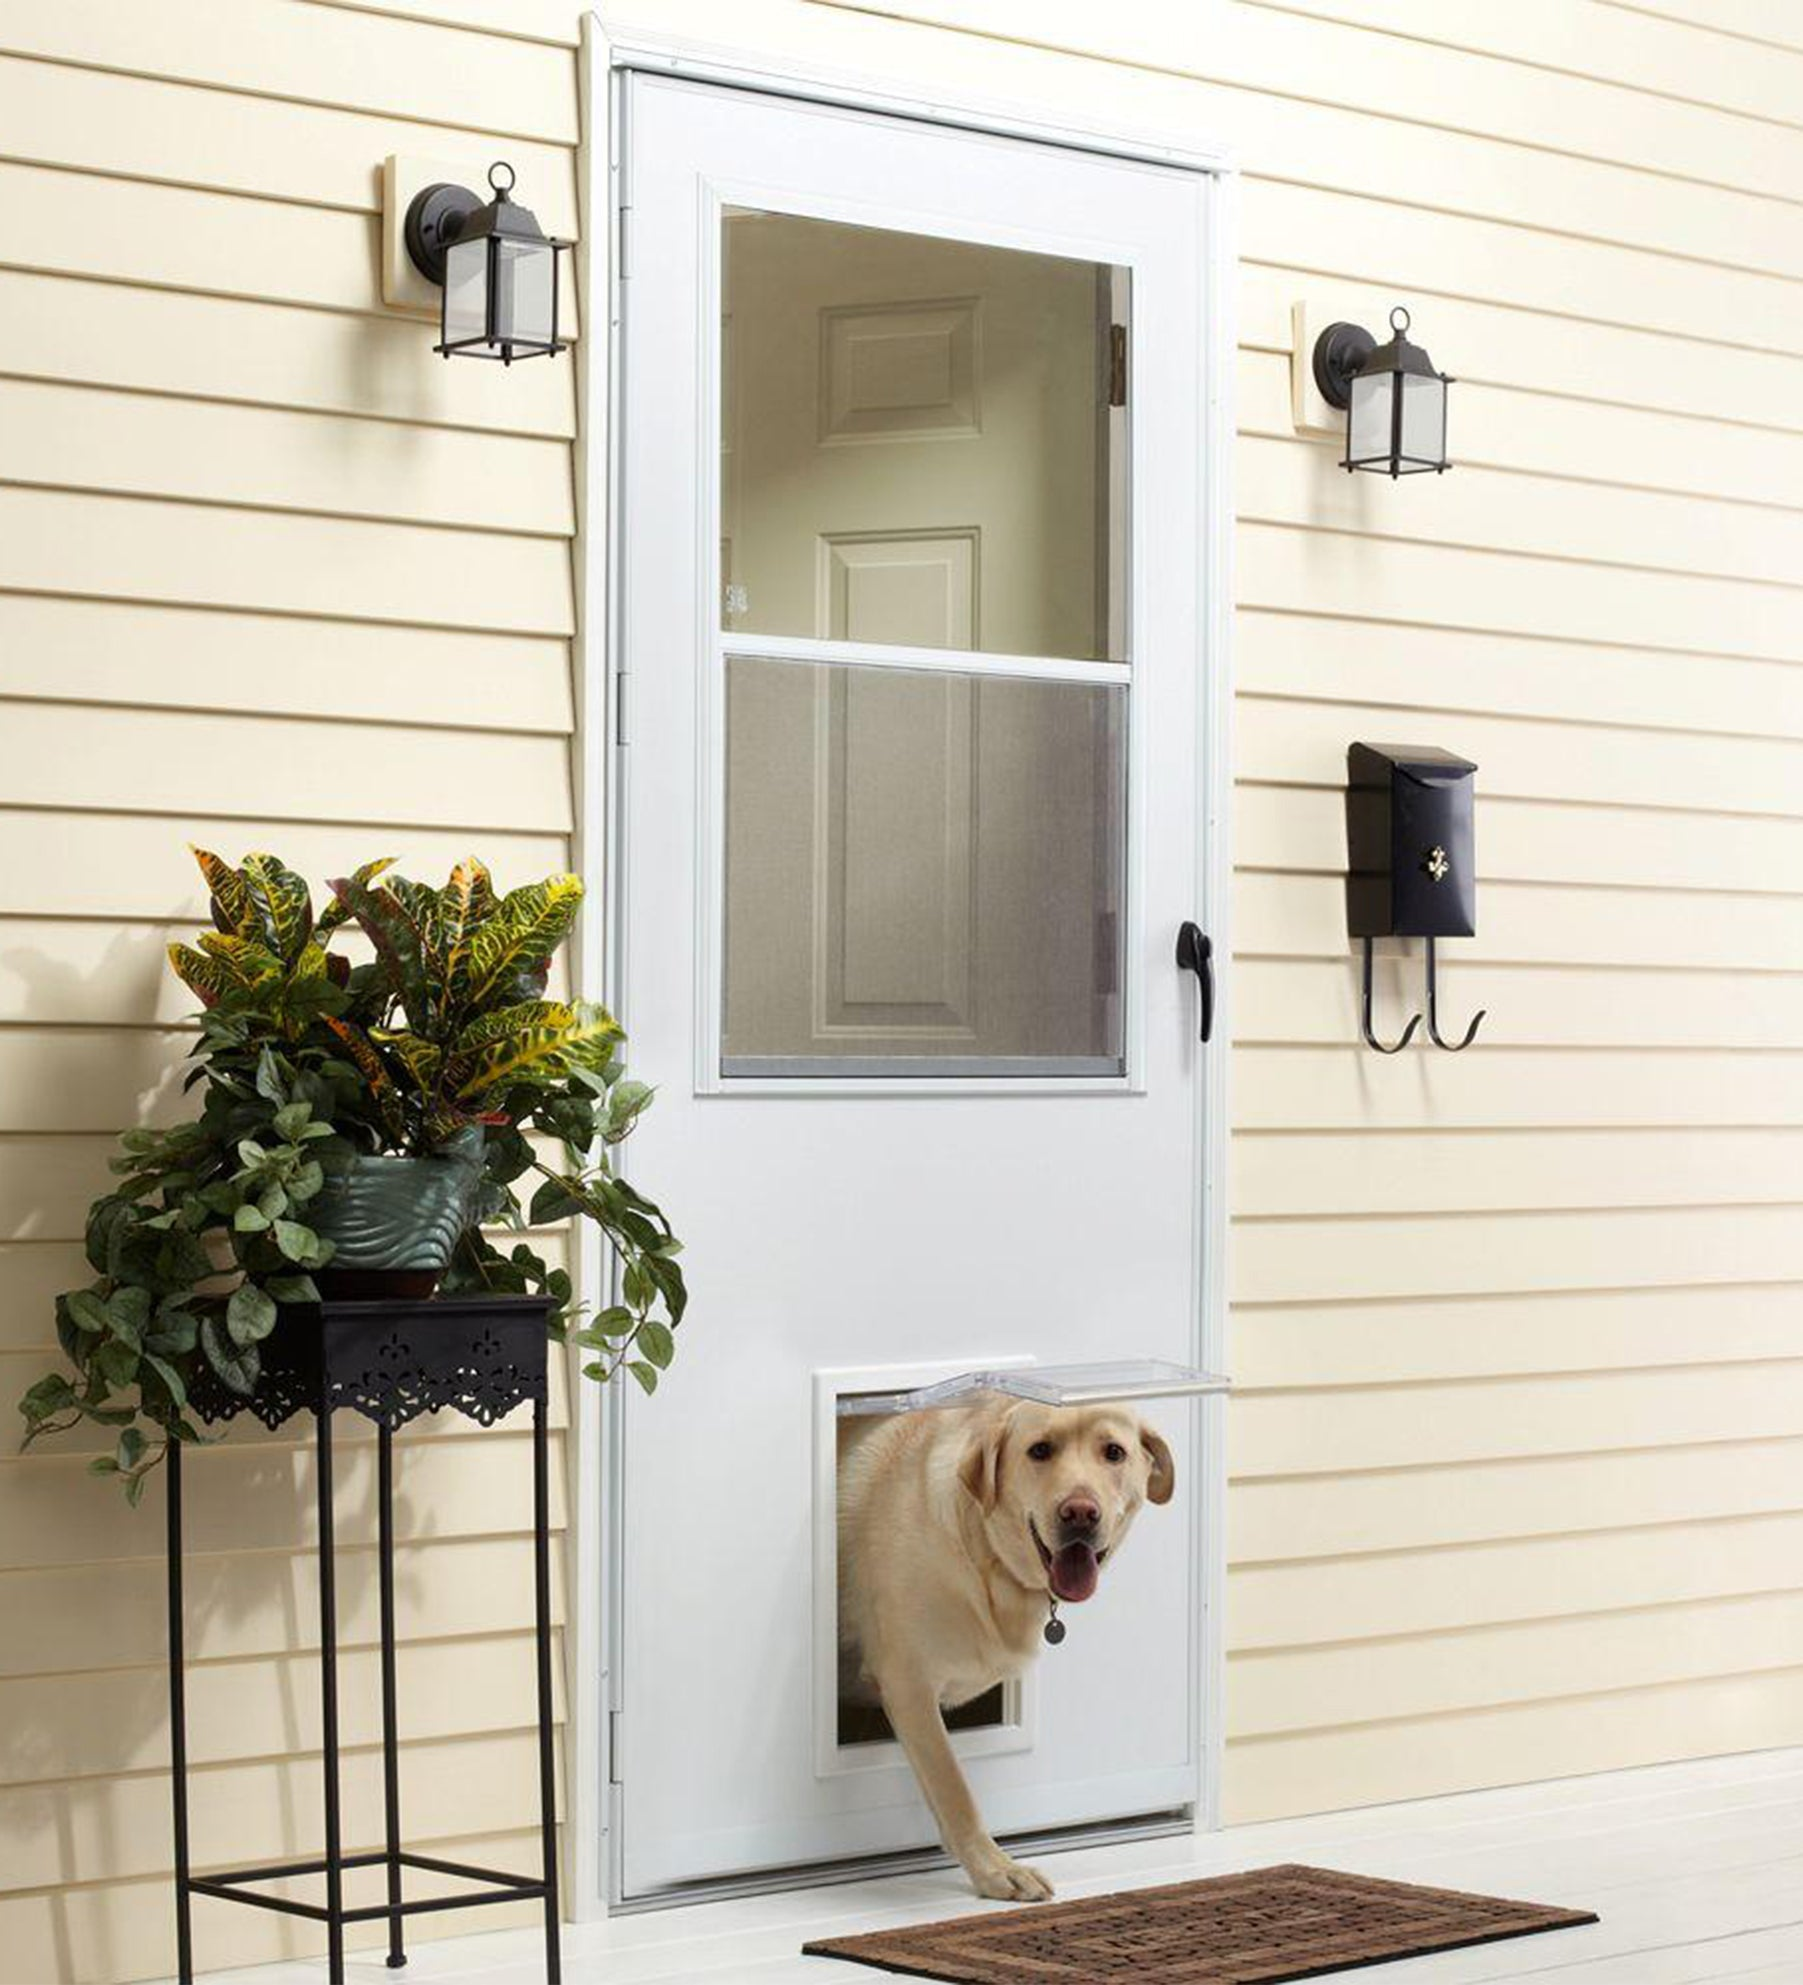 INSTALLED Larson Life-Core Pet Door Storm Door w/ Hardware STARTING $485